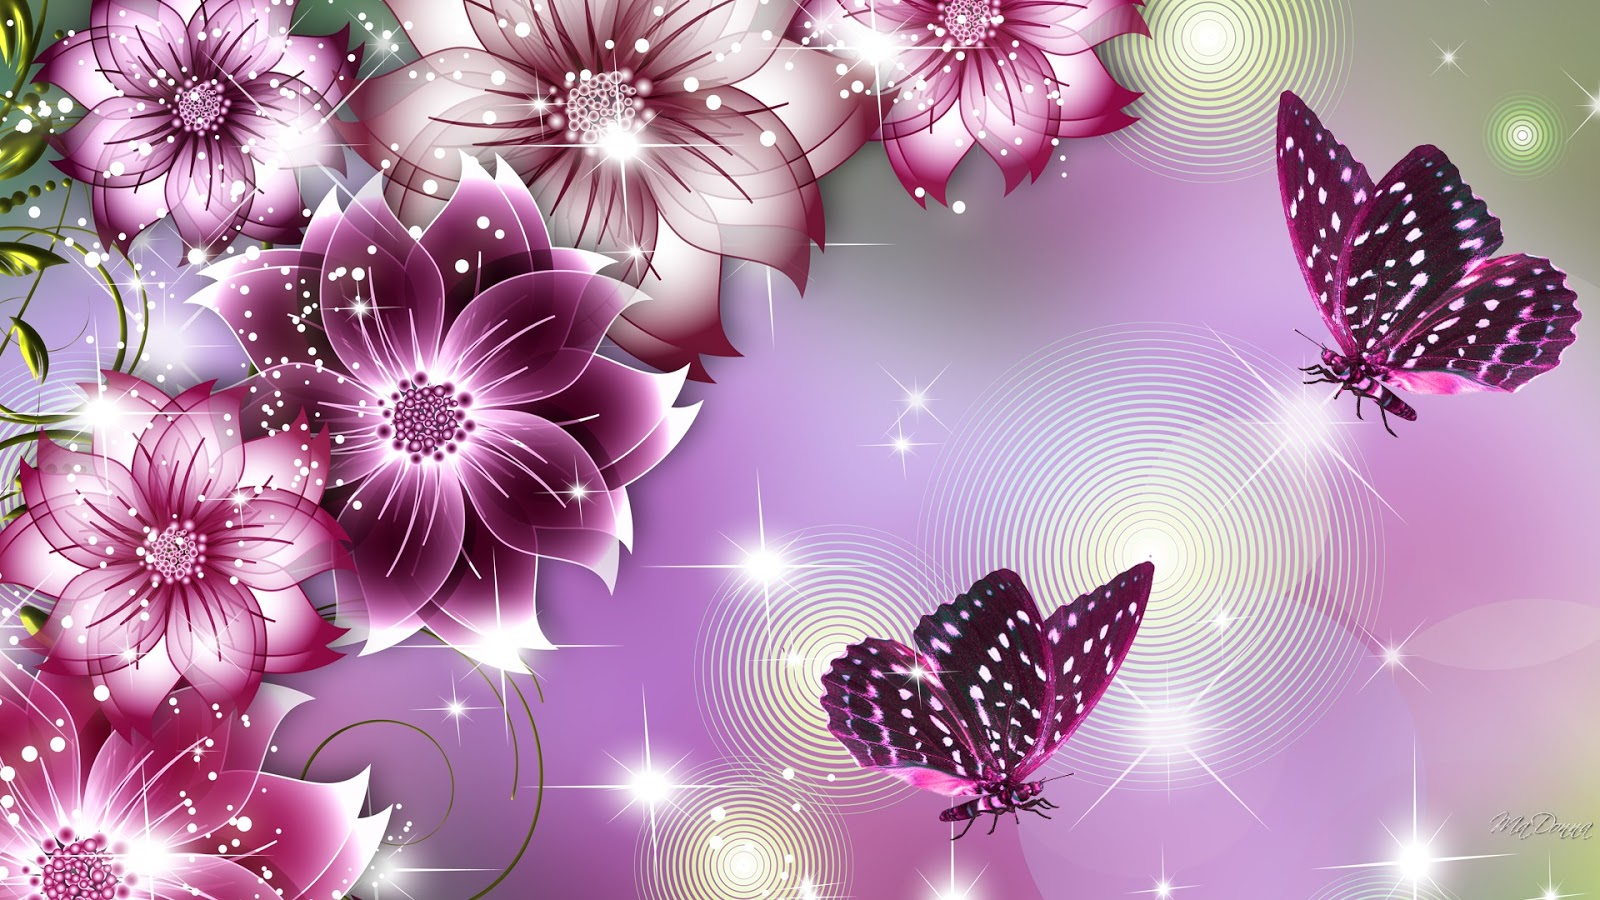 ImagesList Wallpapers With Butterflies 5